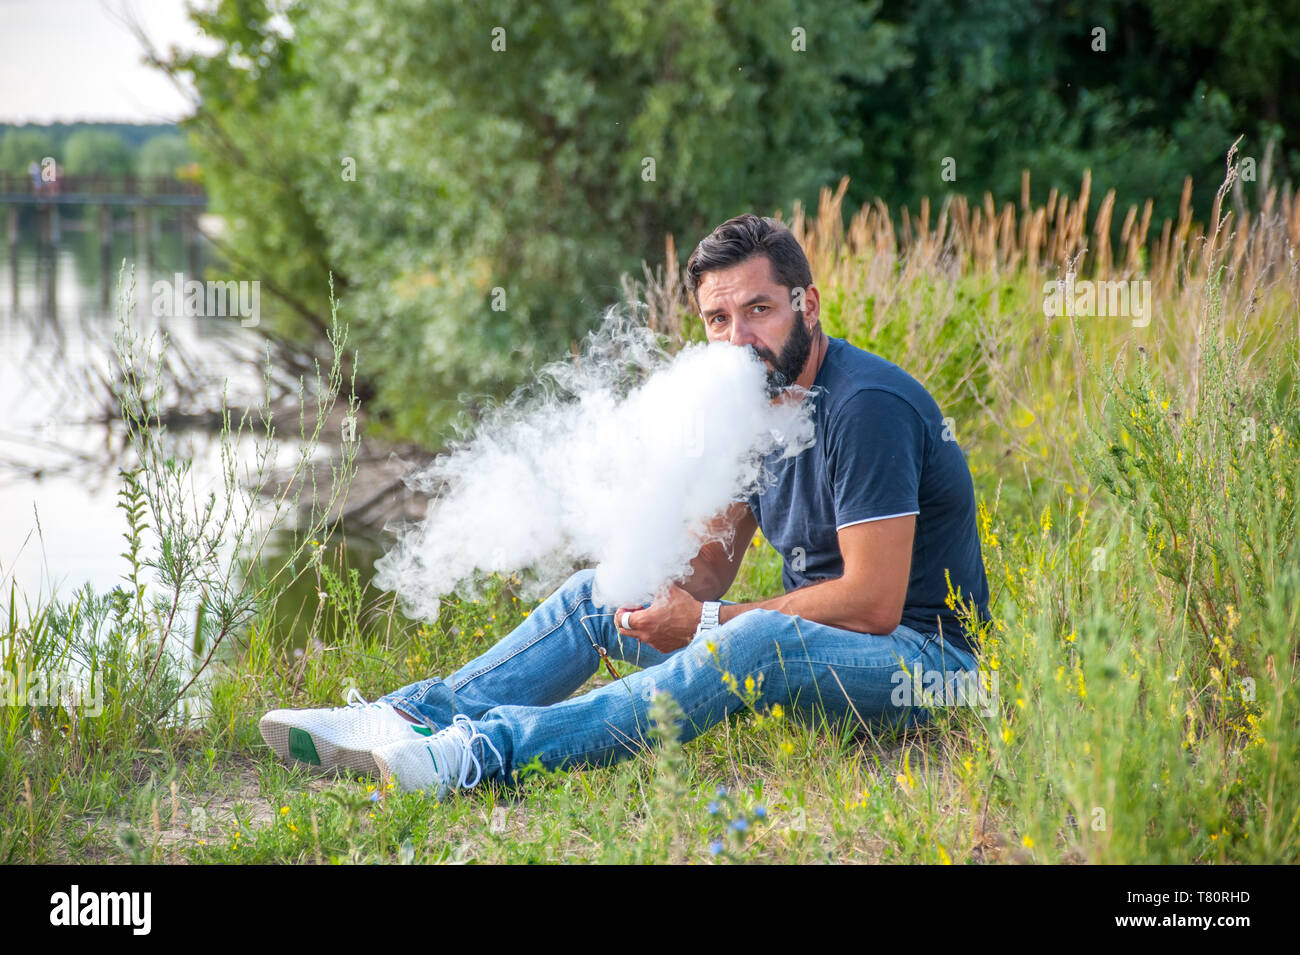 Stylish brutal smoker smoking an electronic cigarette in the daylight. Non-tobacco smoking. - Stock Image